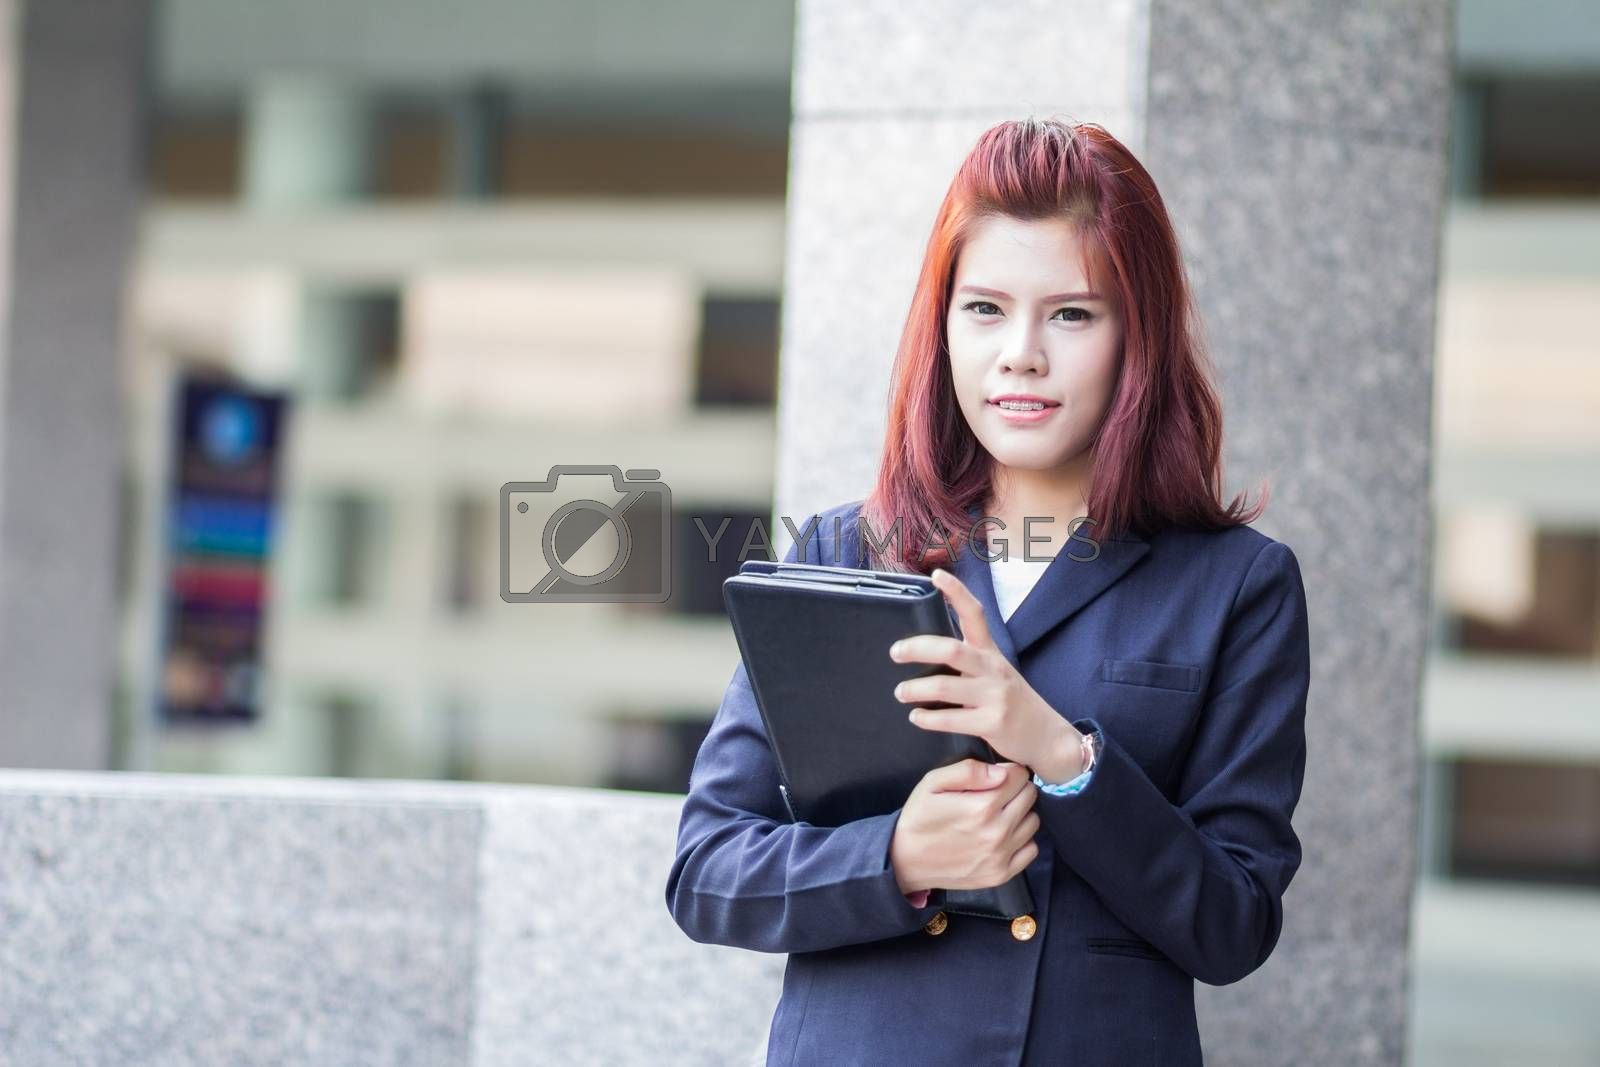 Royalty free image of businesswoman by theerapoll